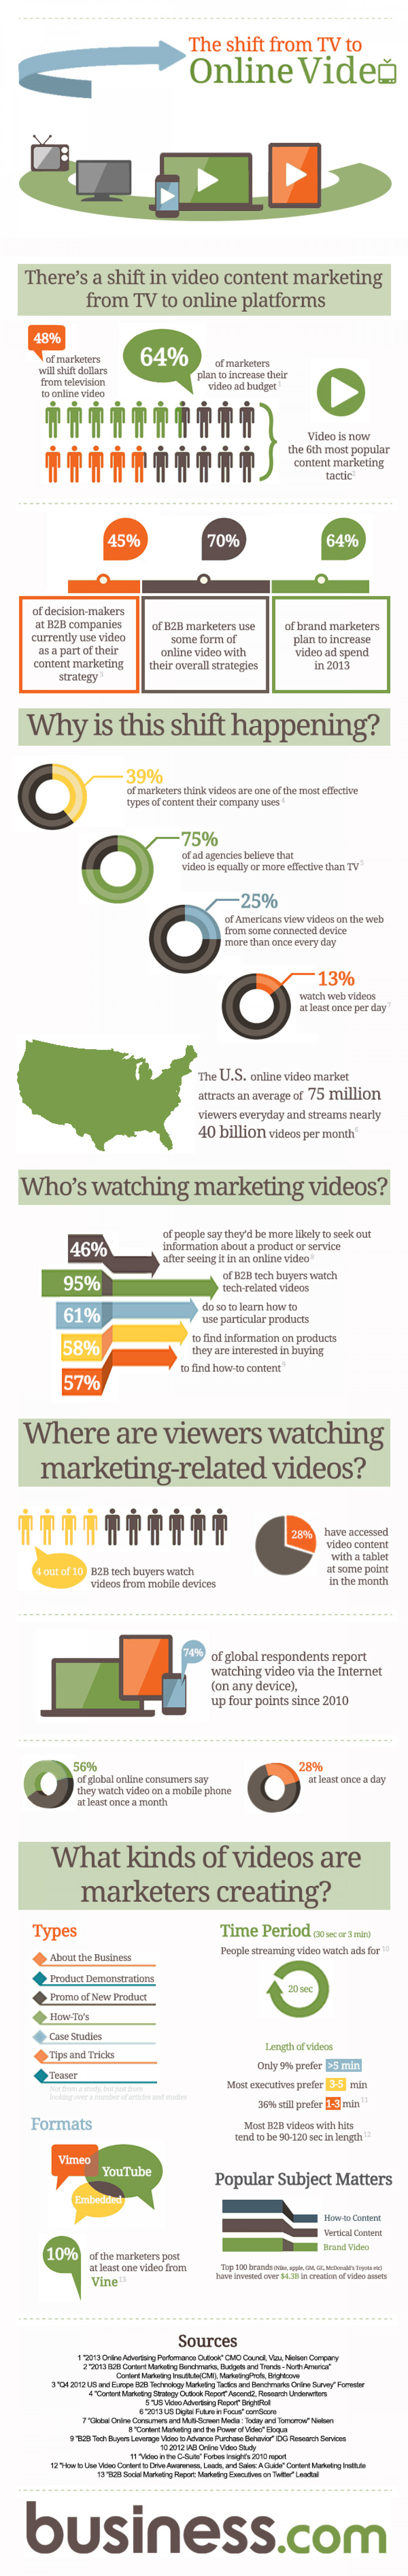 The Shift from TV to Online Video Infographic